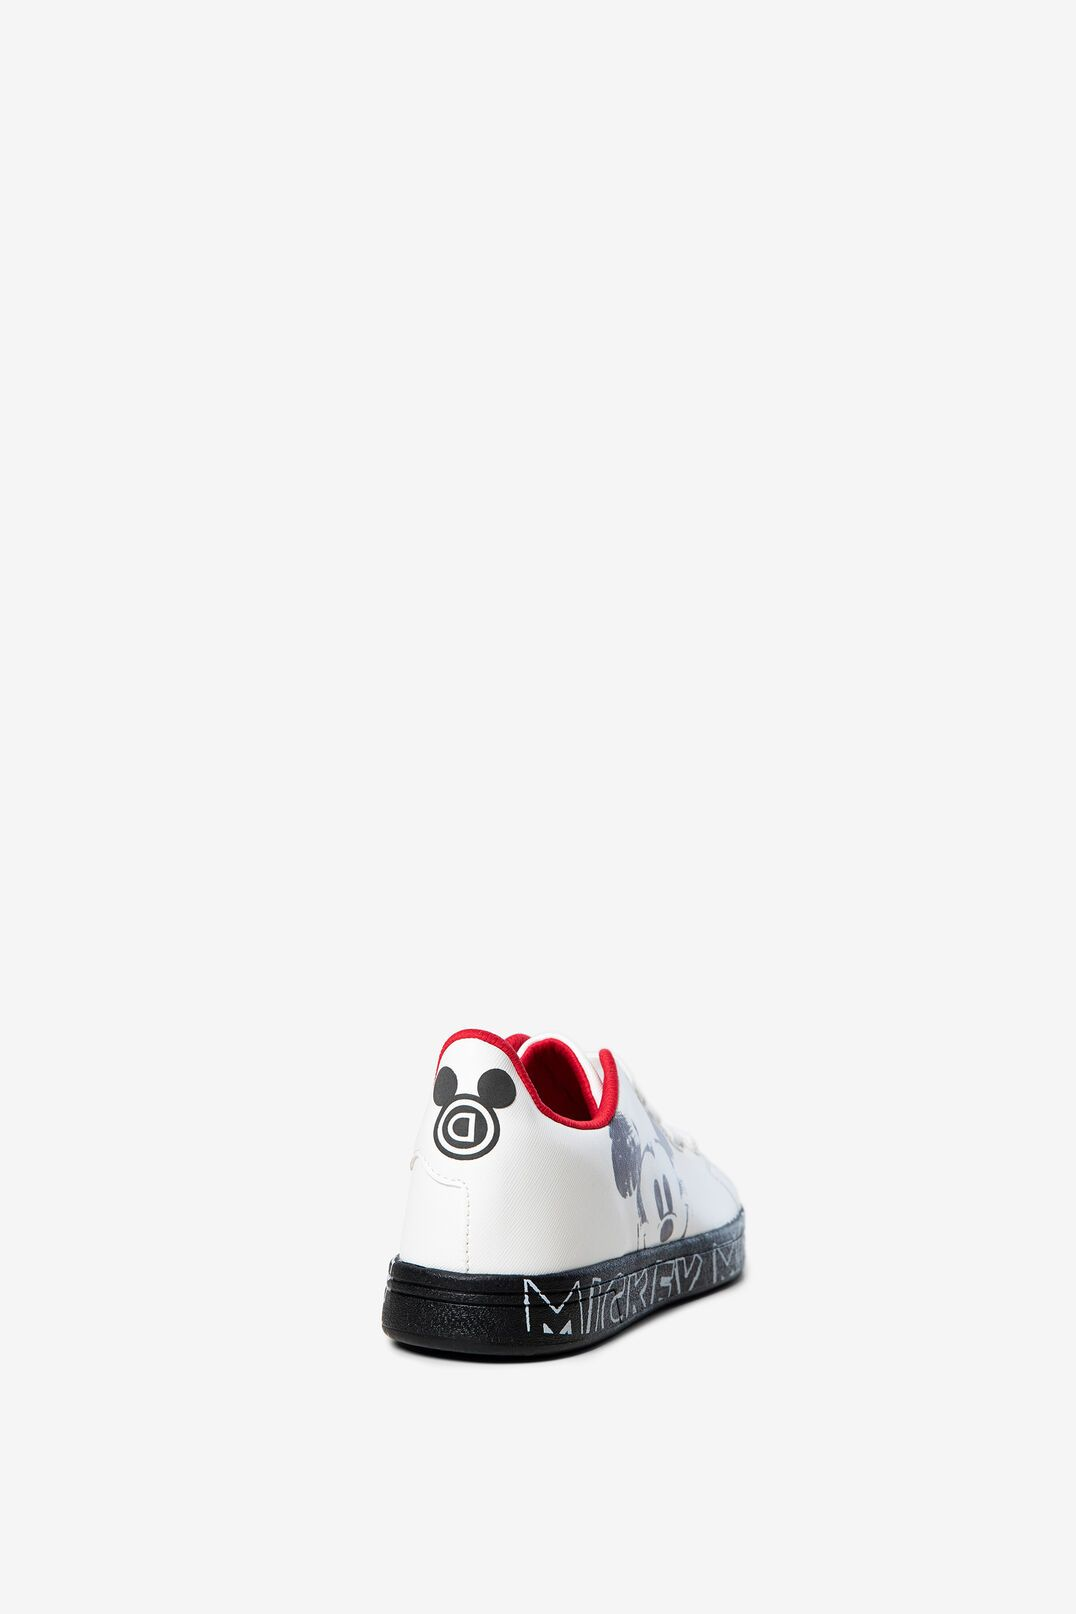 SHOES_COSMIC_MICKEY MOU 20SSKP33 1000 4